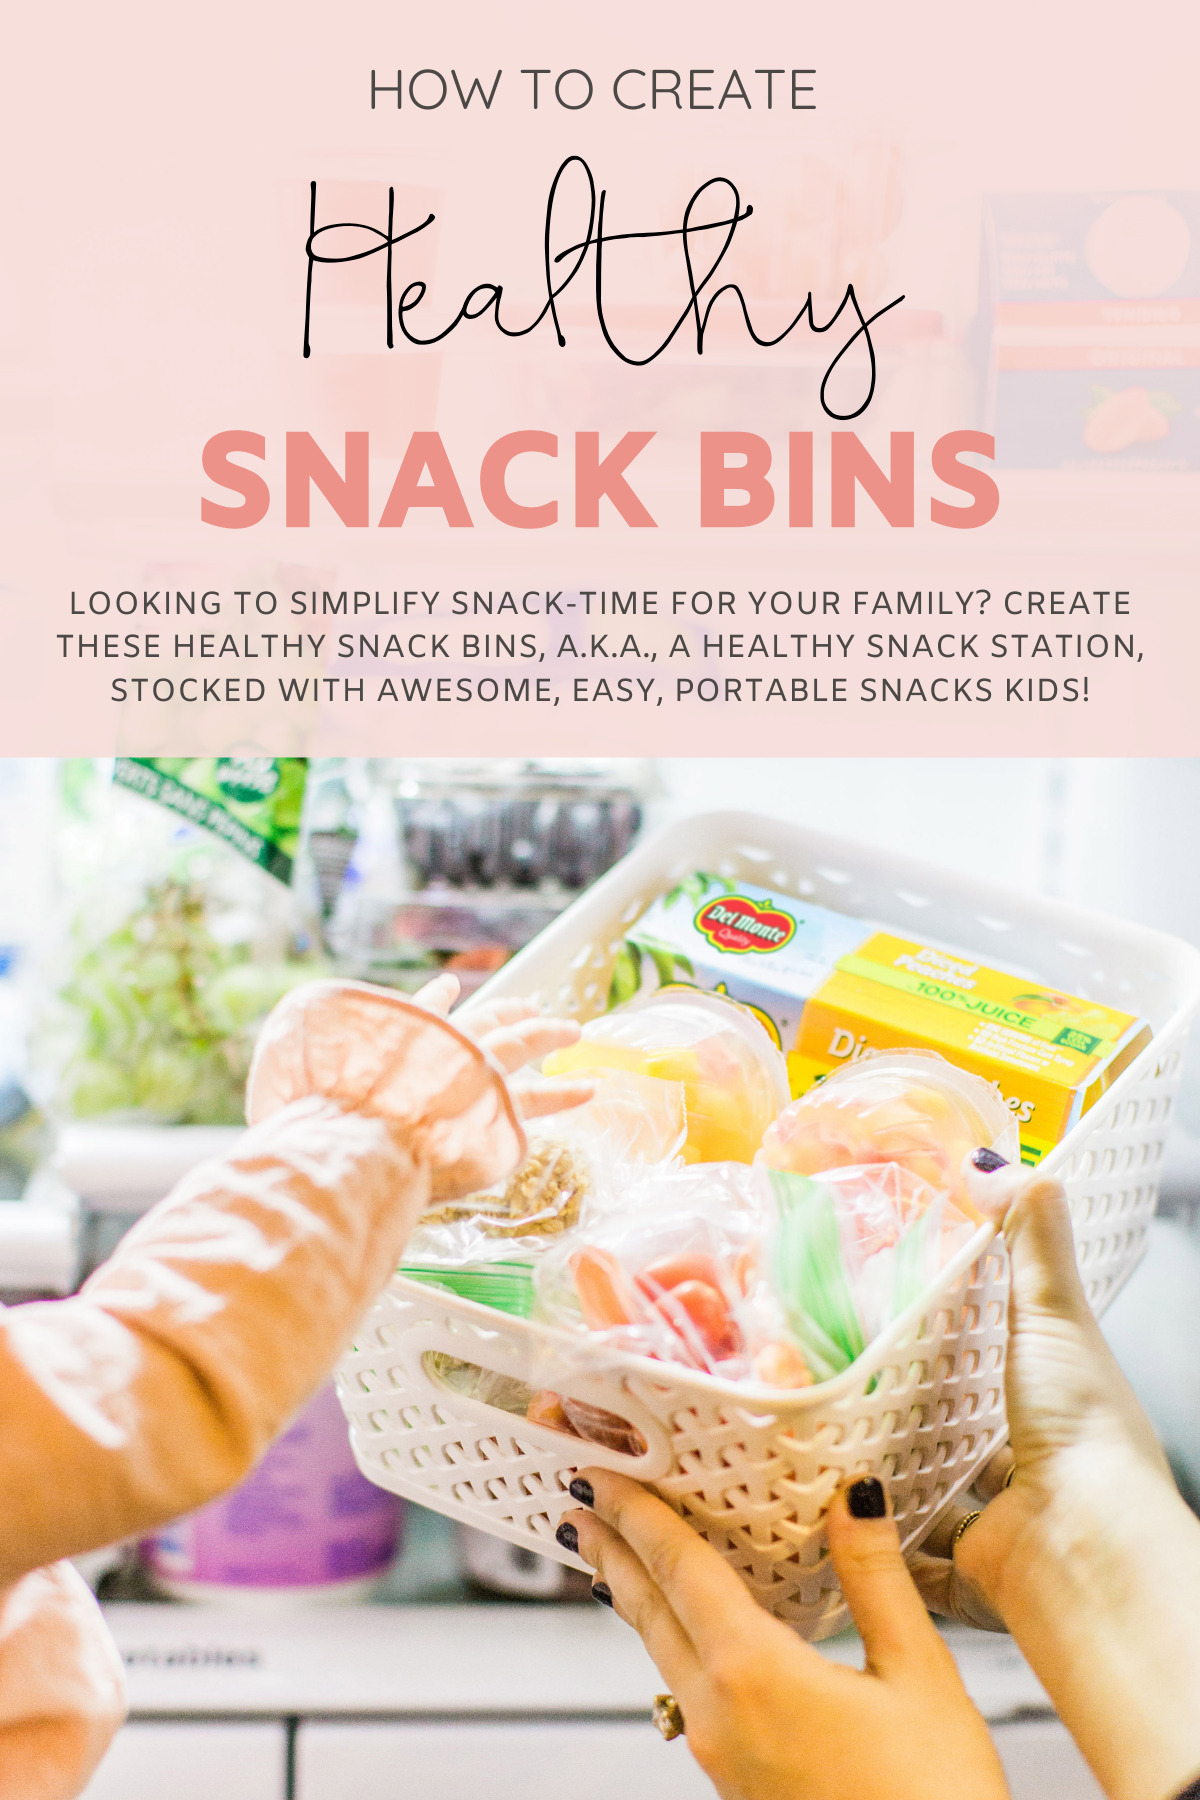 Hoping to simplify snack-time for your family? Create these healthy snack bins, a.k.a., a healthy snack station, stocked with awesome, easy, portable snacks kids and grown-ups alike will love! Perfect for after school snacking.   glitterinc.com   @glitterinc